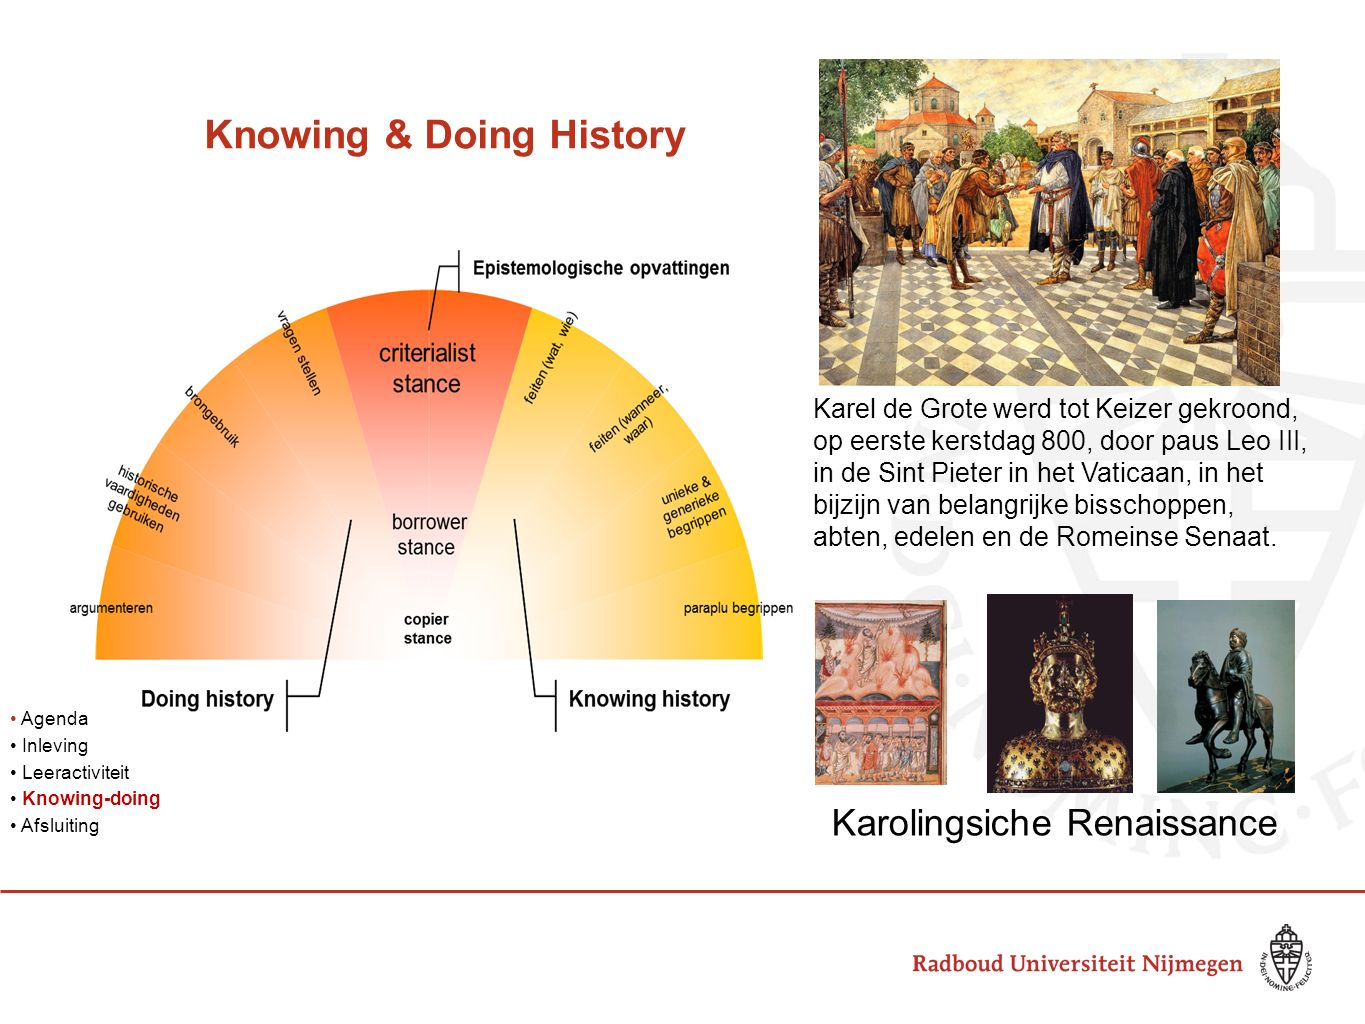 Knowing & Doing History